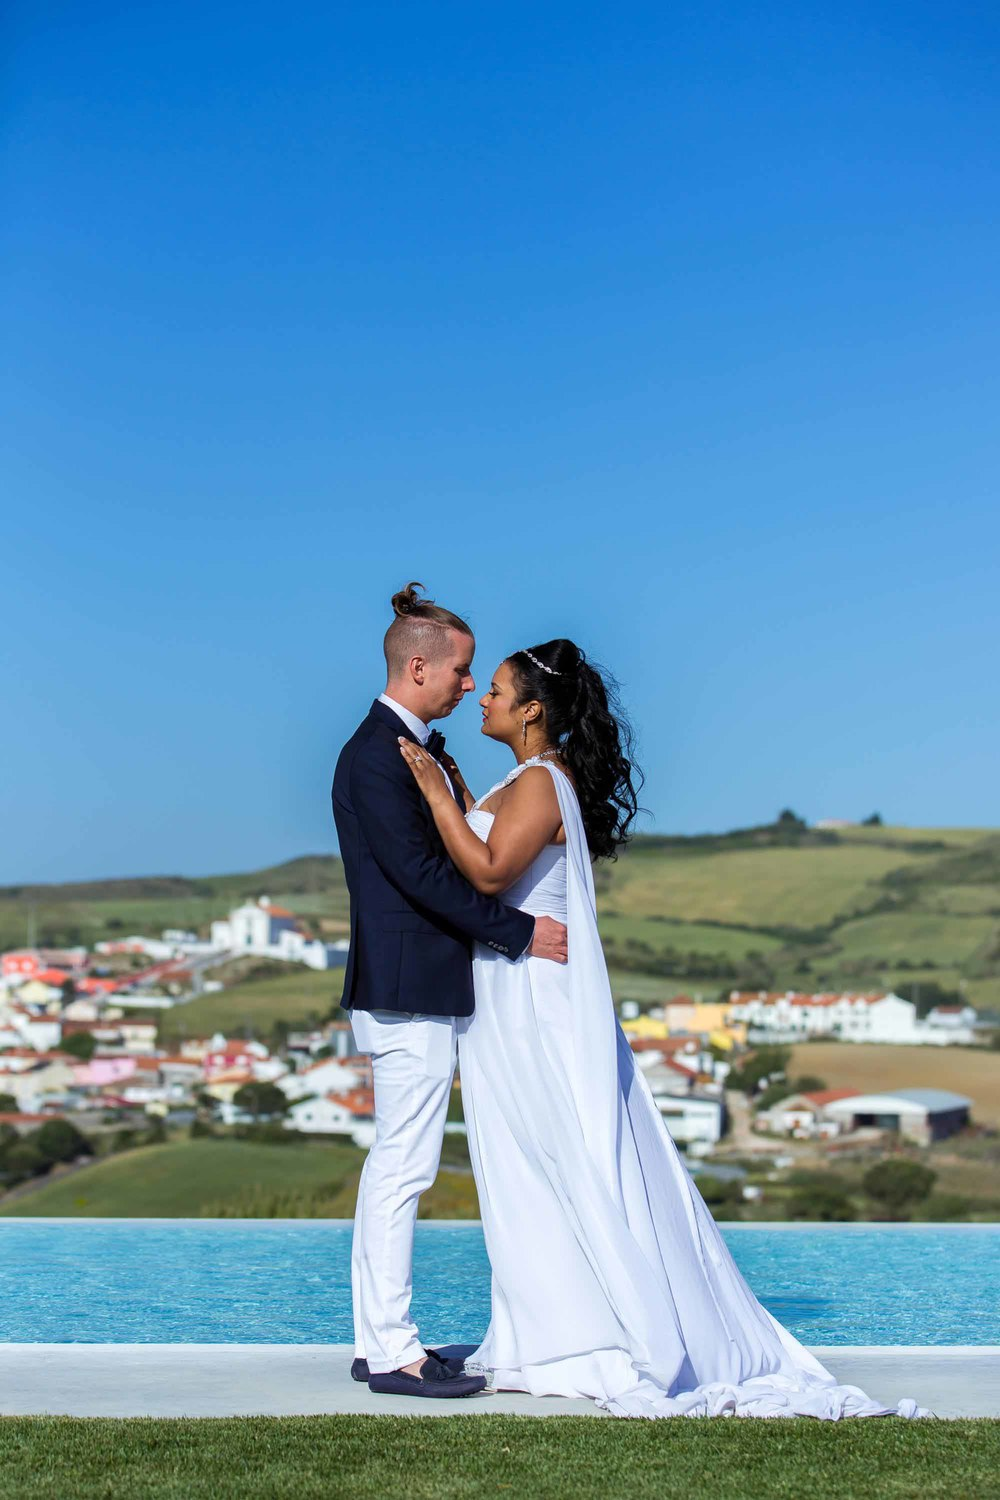 Portugal-Wedding-Photographer-109.jpg